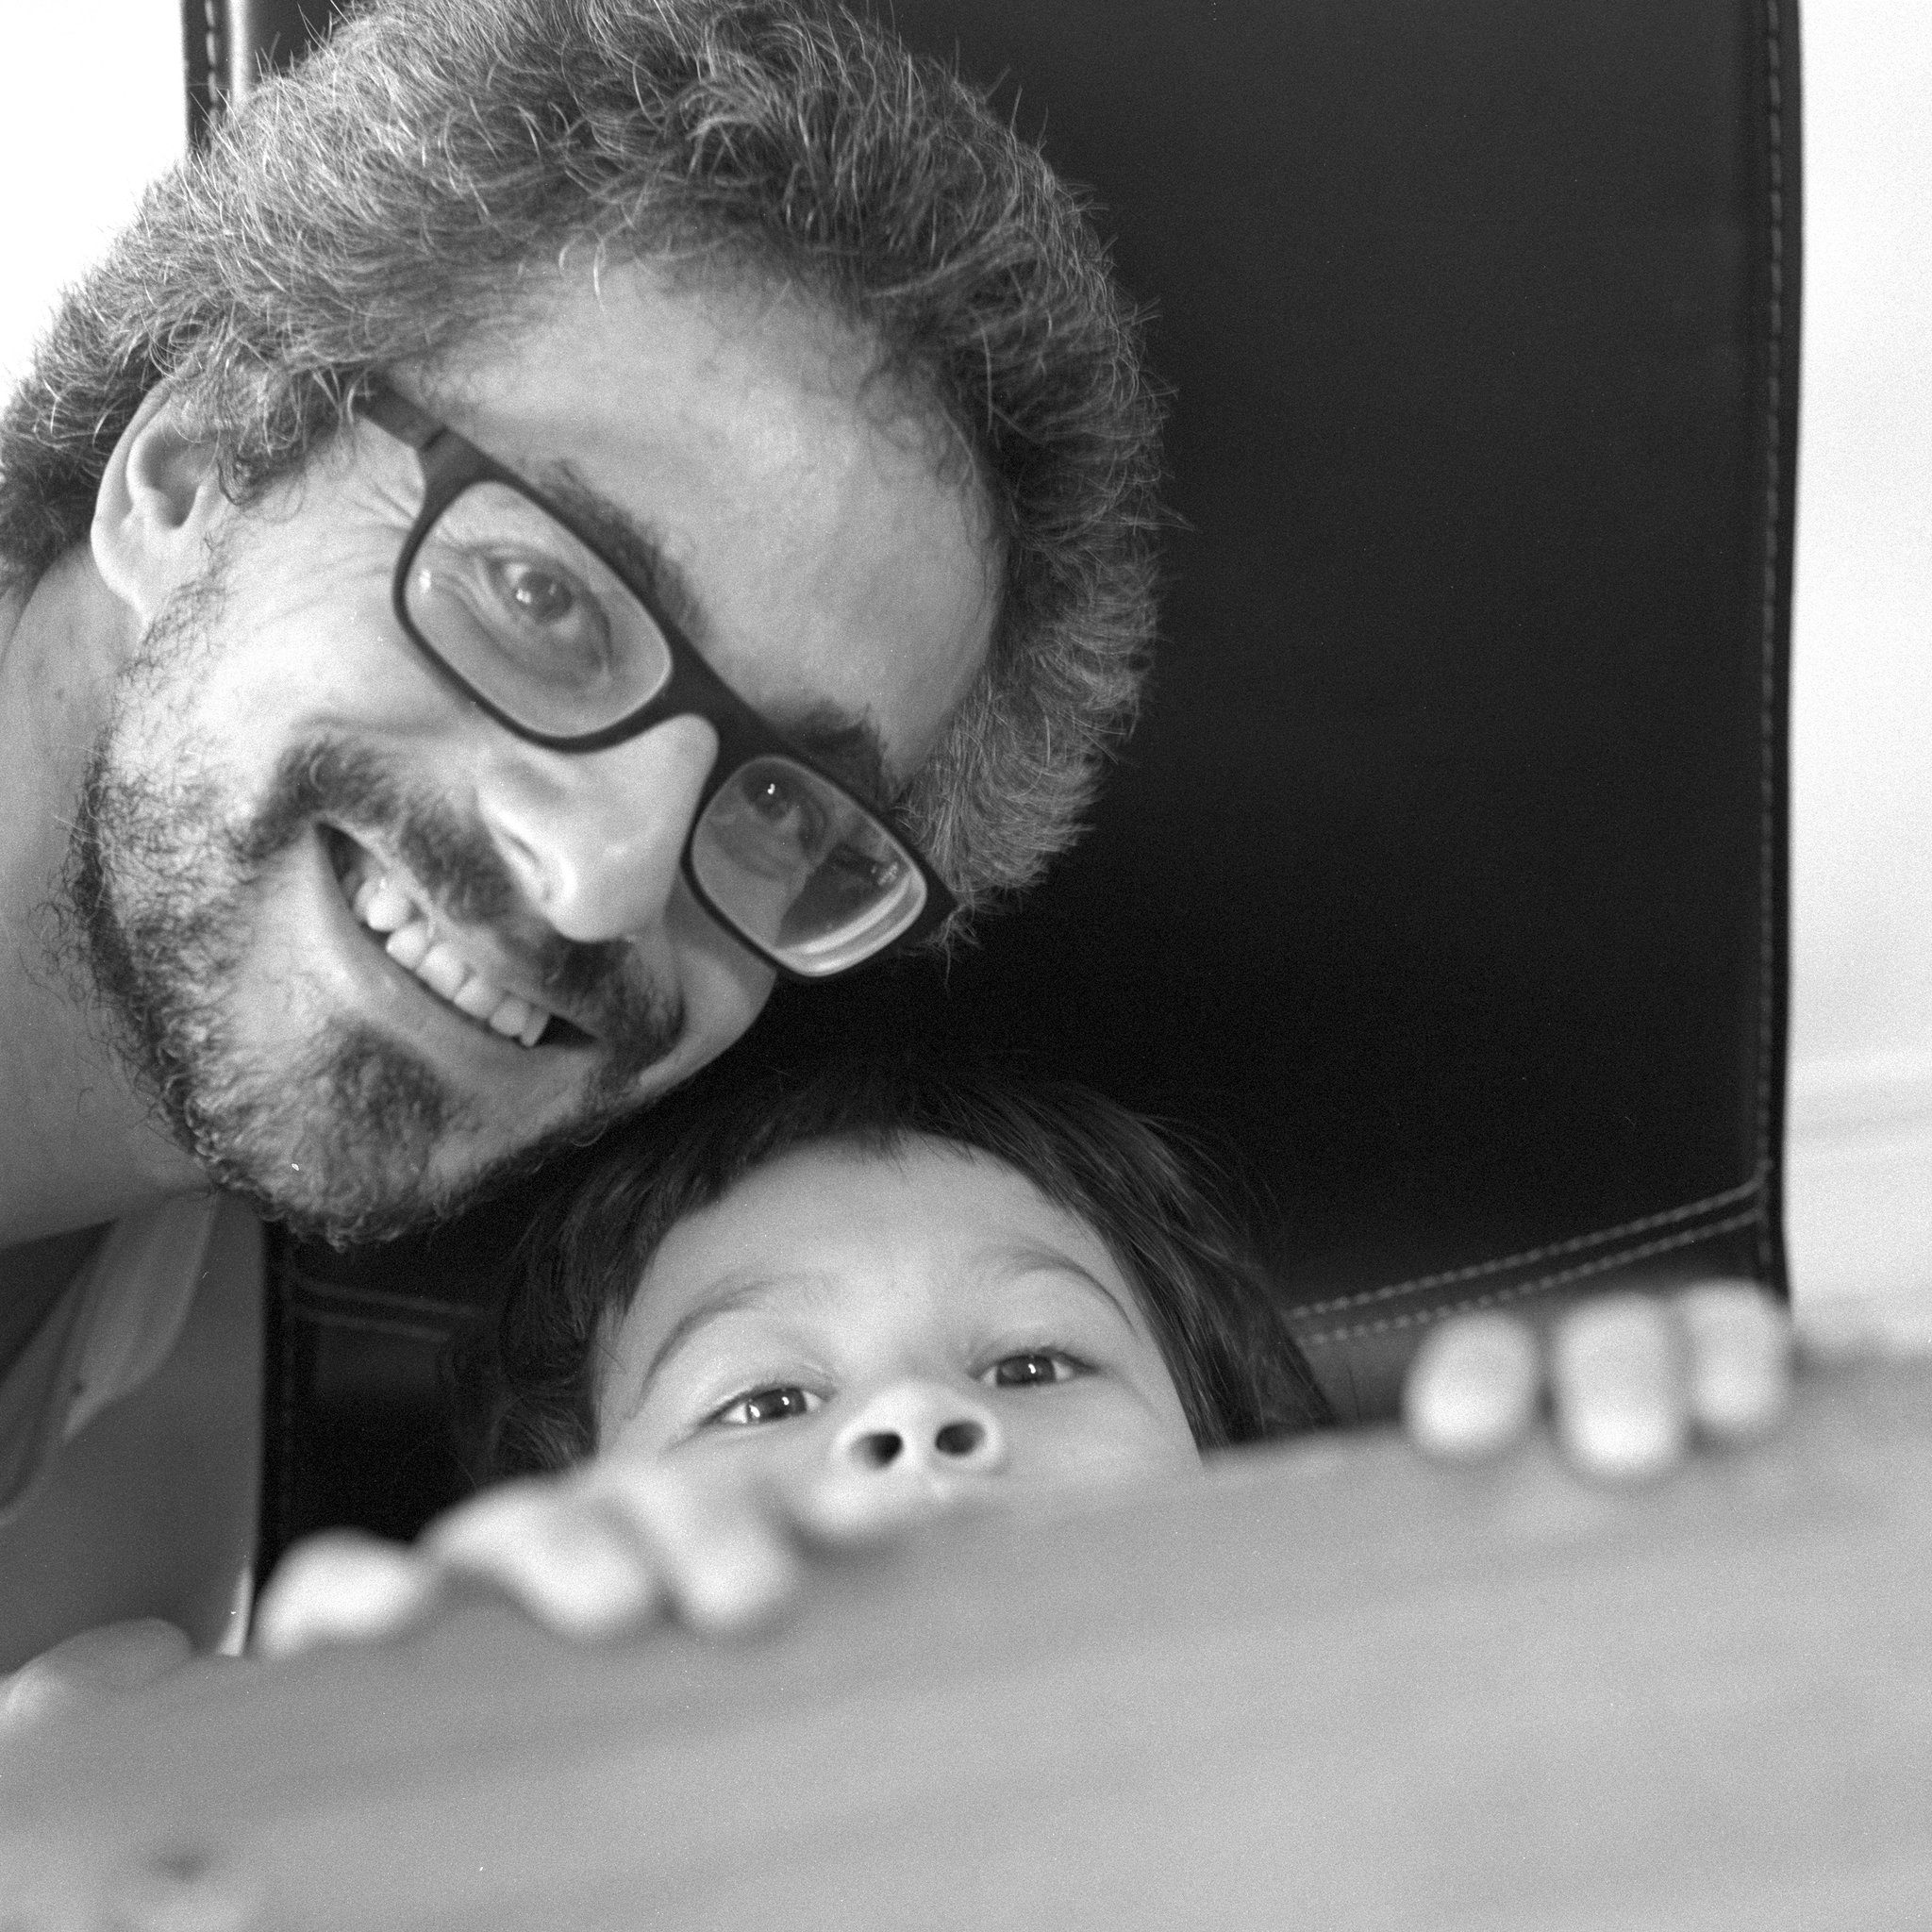 @Aryel89959692 · Jun 17 Here is my submission Smiling face Shot on #fp4+ processed in #ddx #ilfordphoto #fridayfavourites #filmfathers